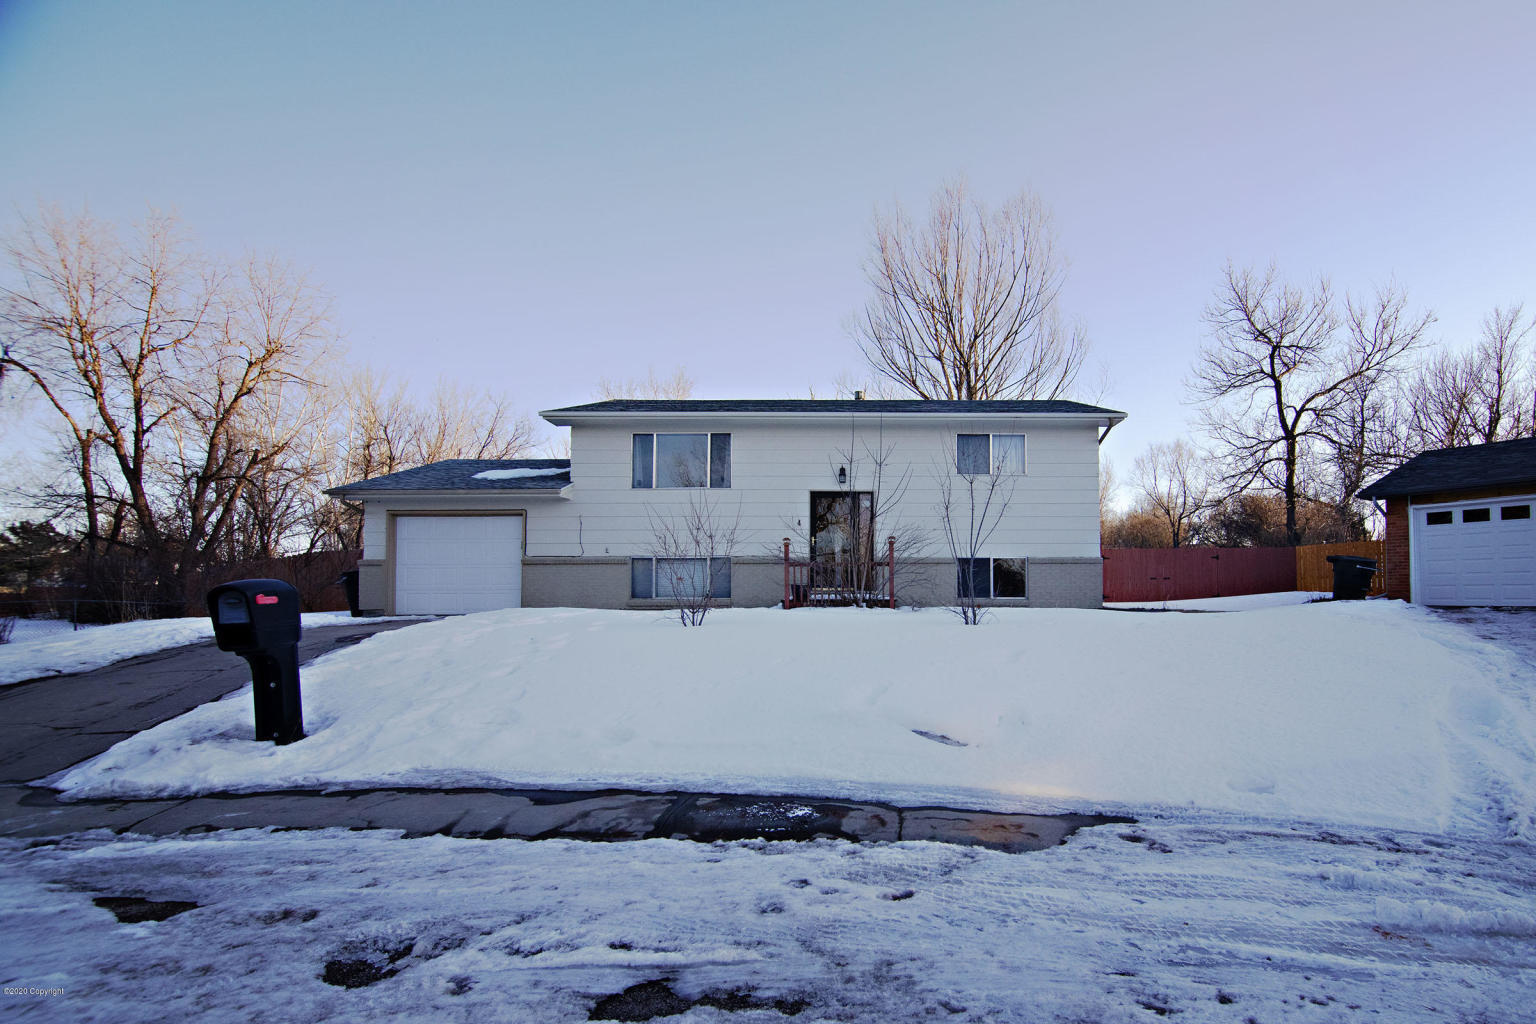 Cabinet D Architecte Nice 4 sage ct-well kept home | gillette, wy real estate :: the